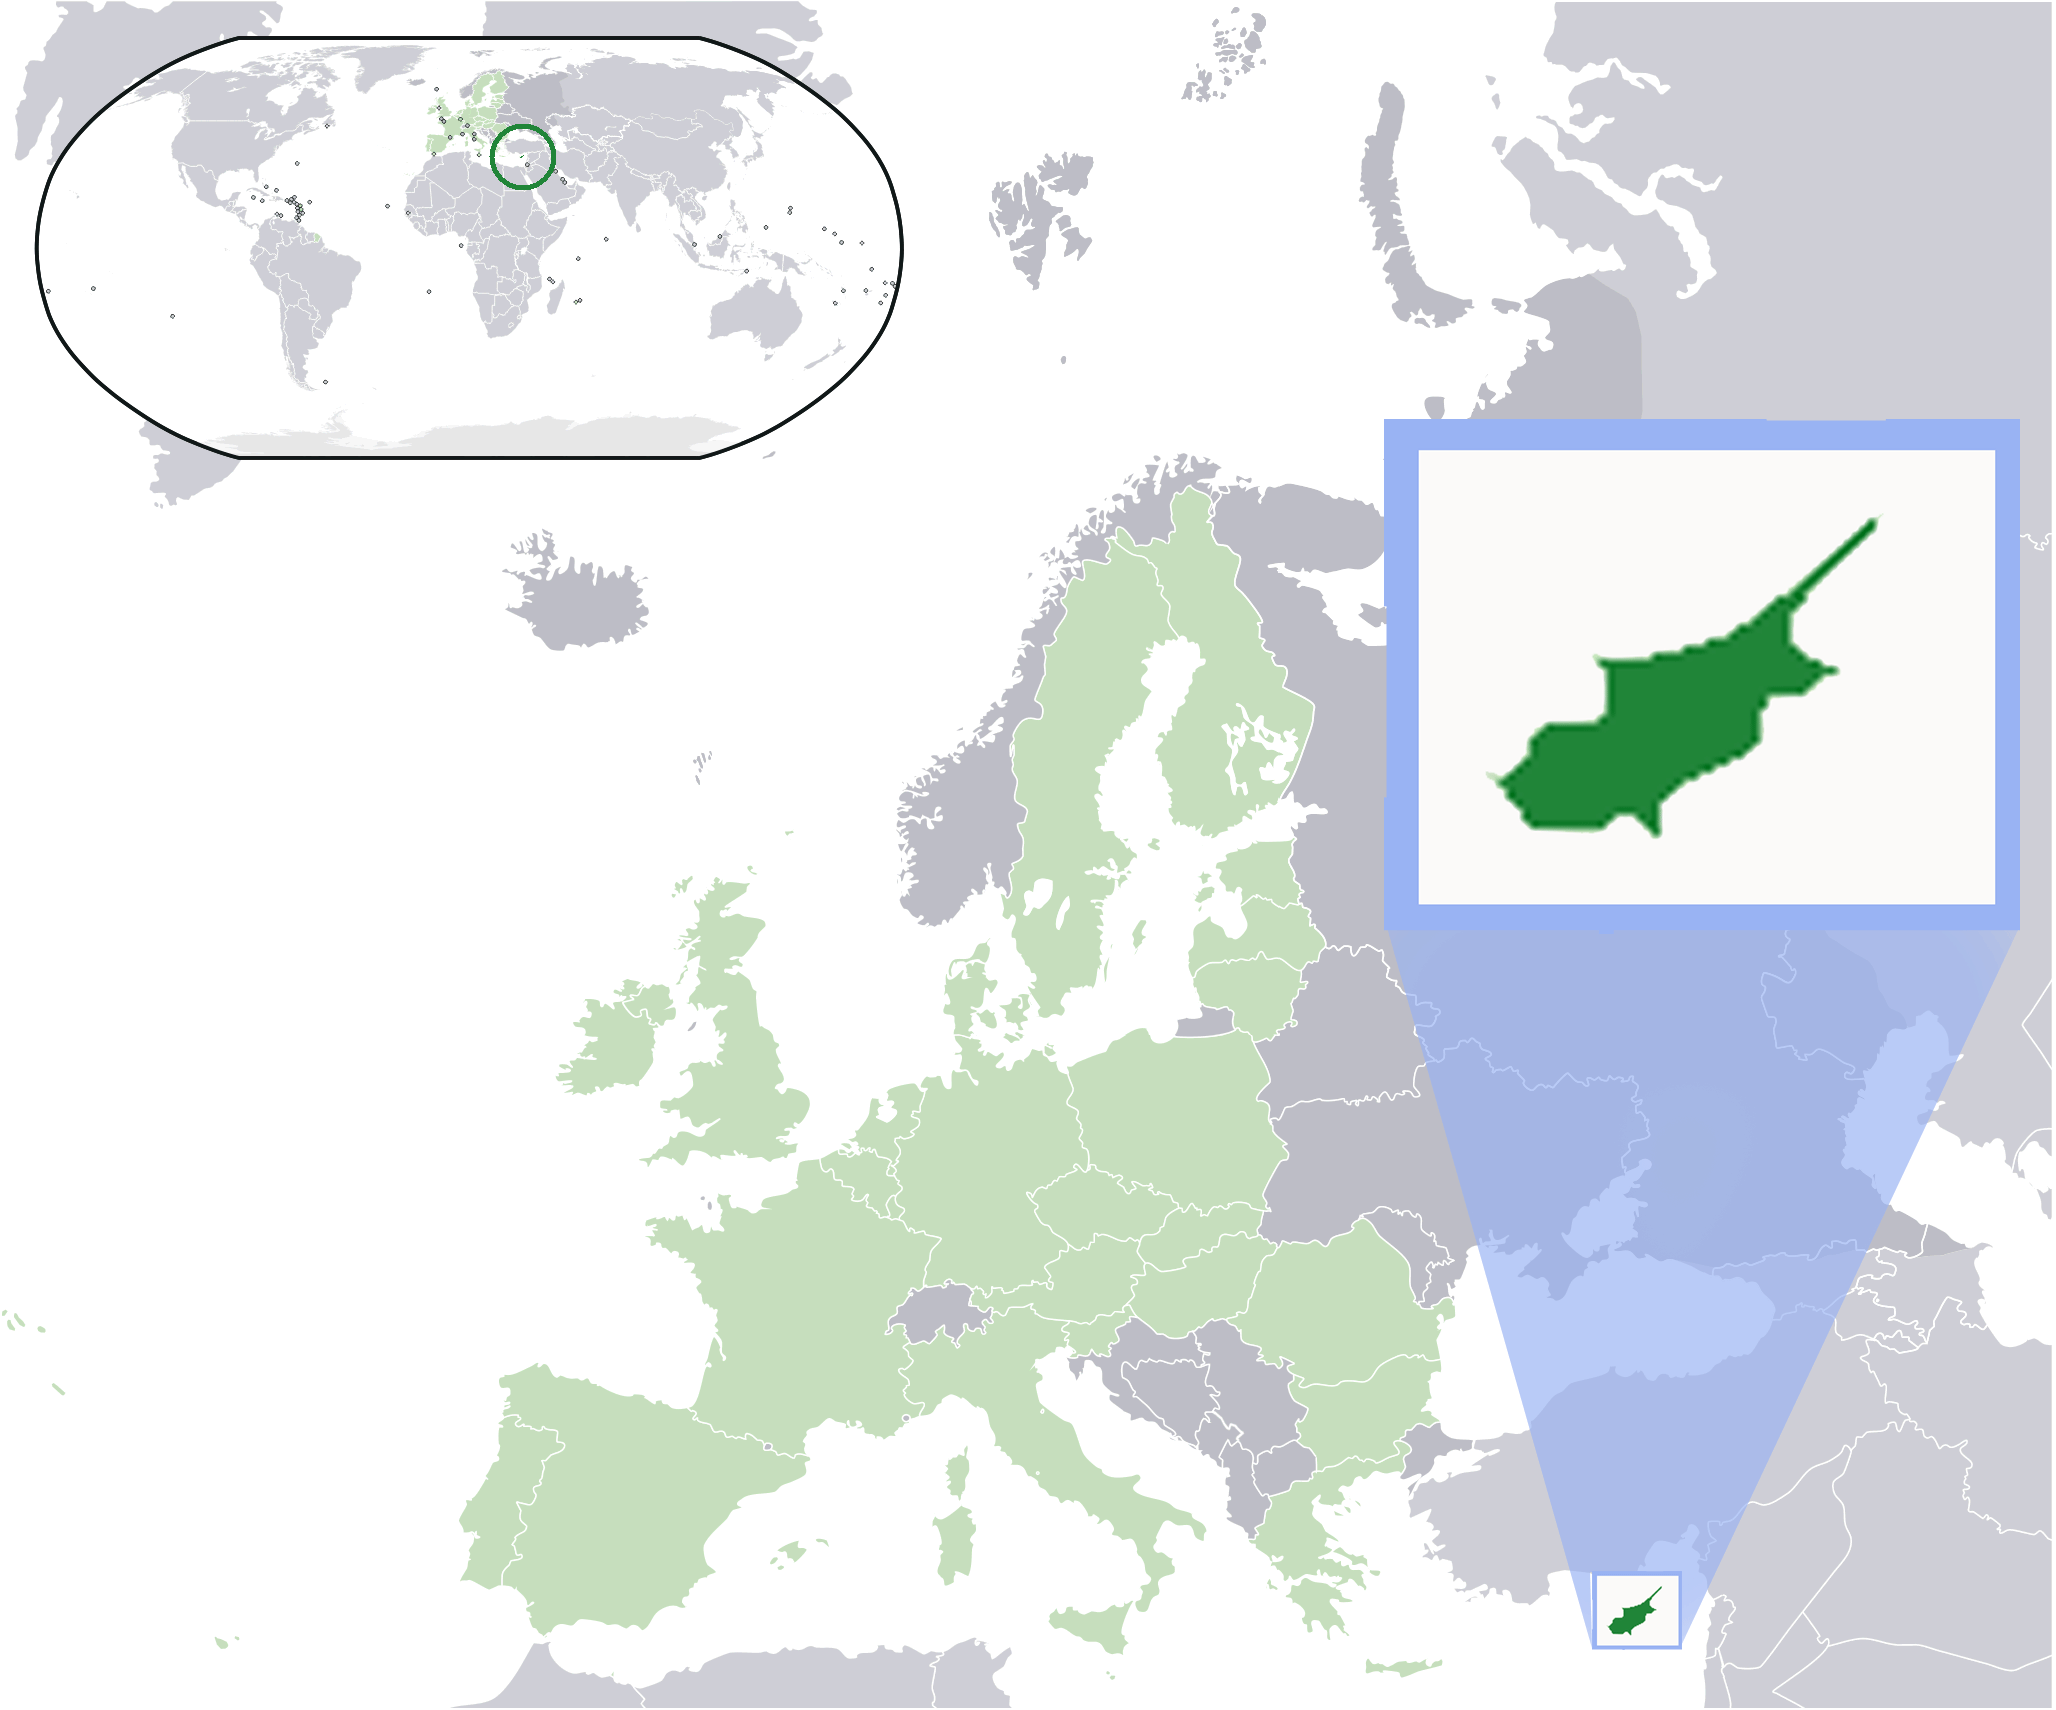 Where Is Cyprus Located On The World Map.Location Cyprus In Eu Mapsof Net